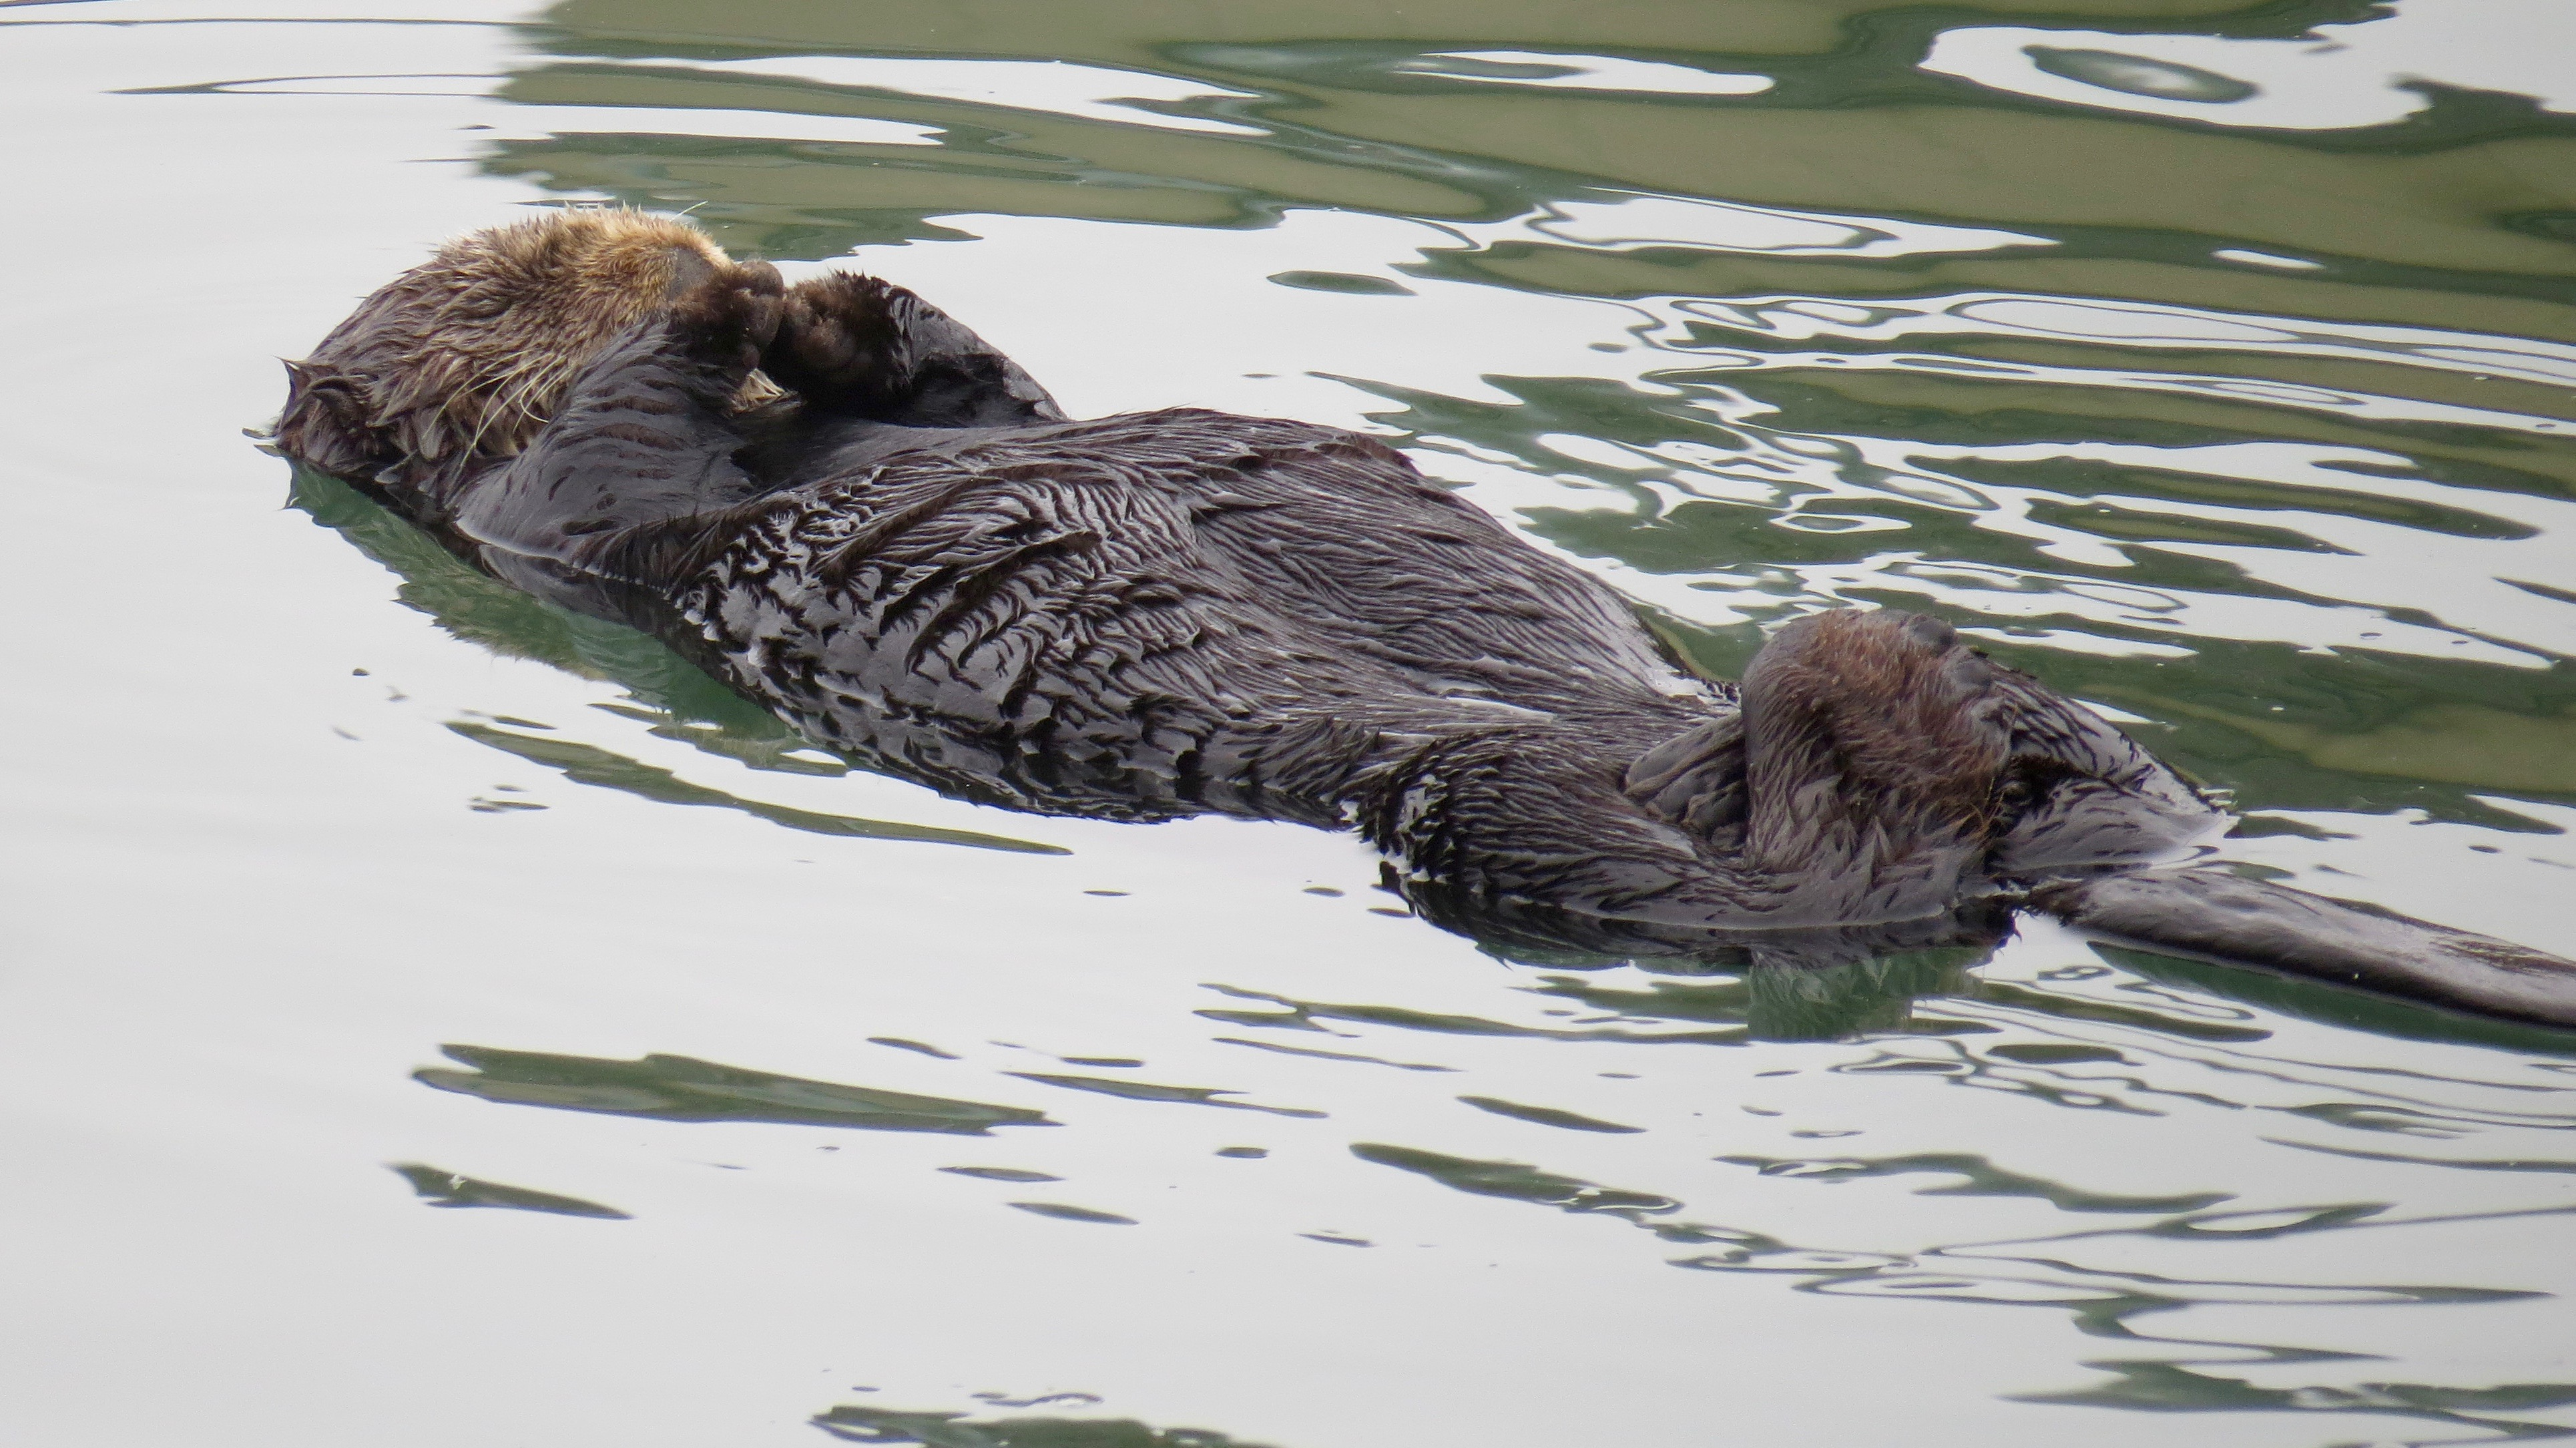 Mr. California Sea Otter